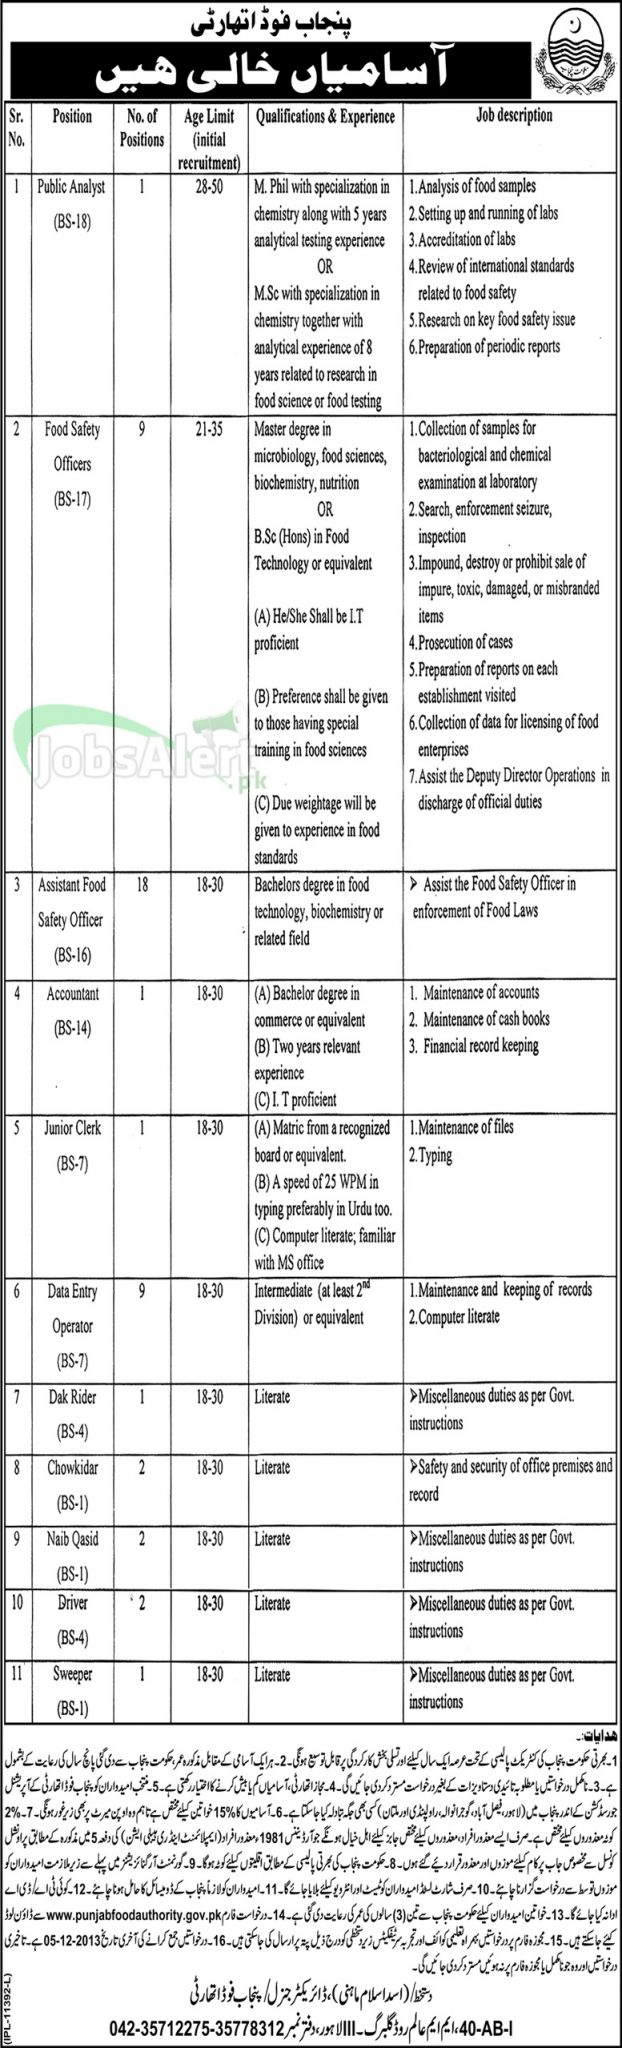 Punjab Food Authority Jobs for Public Analyst & Food Safety Officer in Lahore